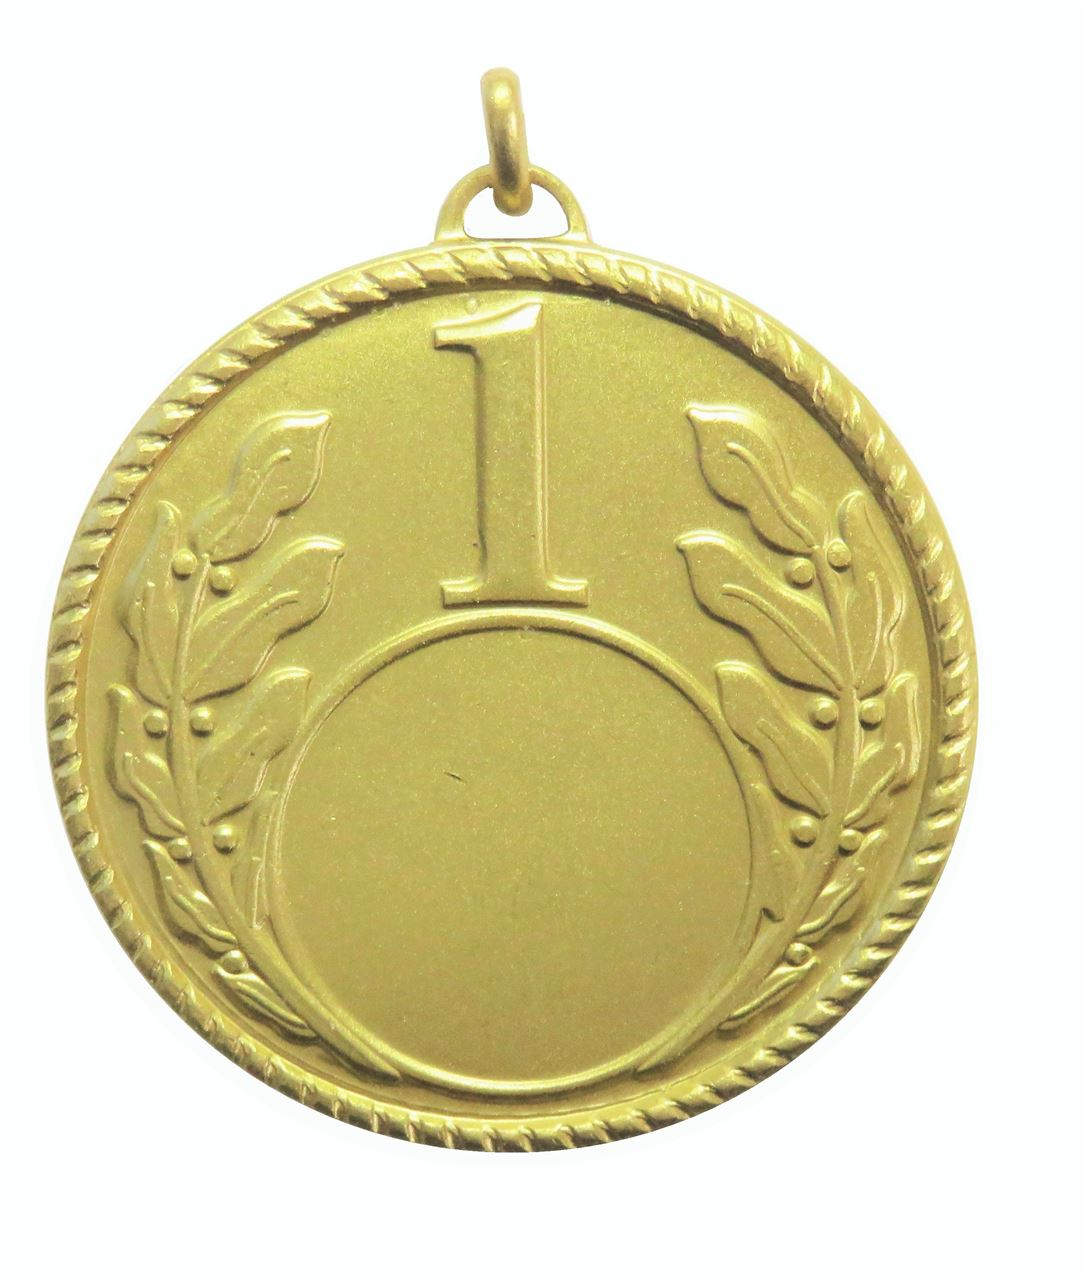 Gold Quality Royal Medal (size: 50mm) - 5801E